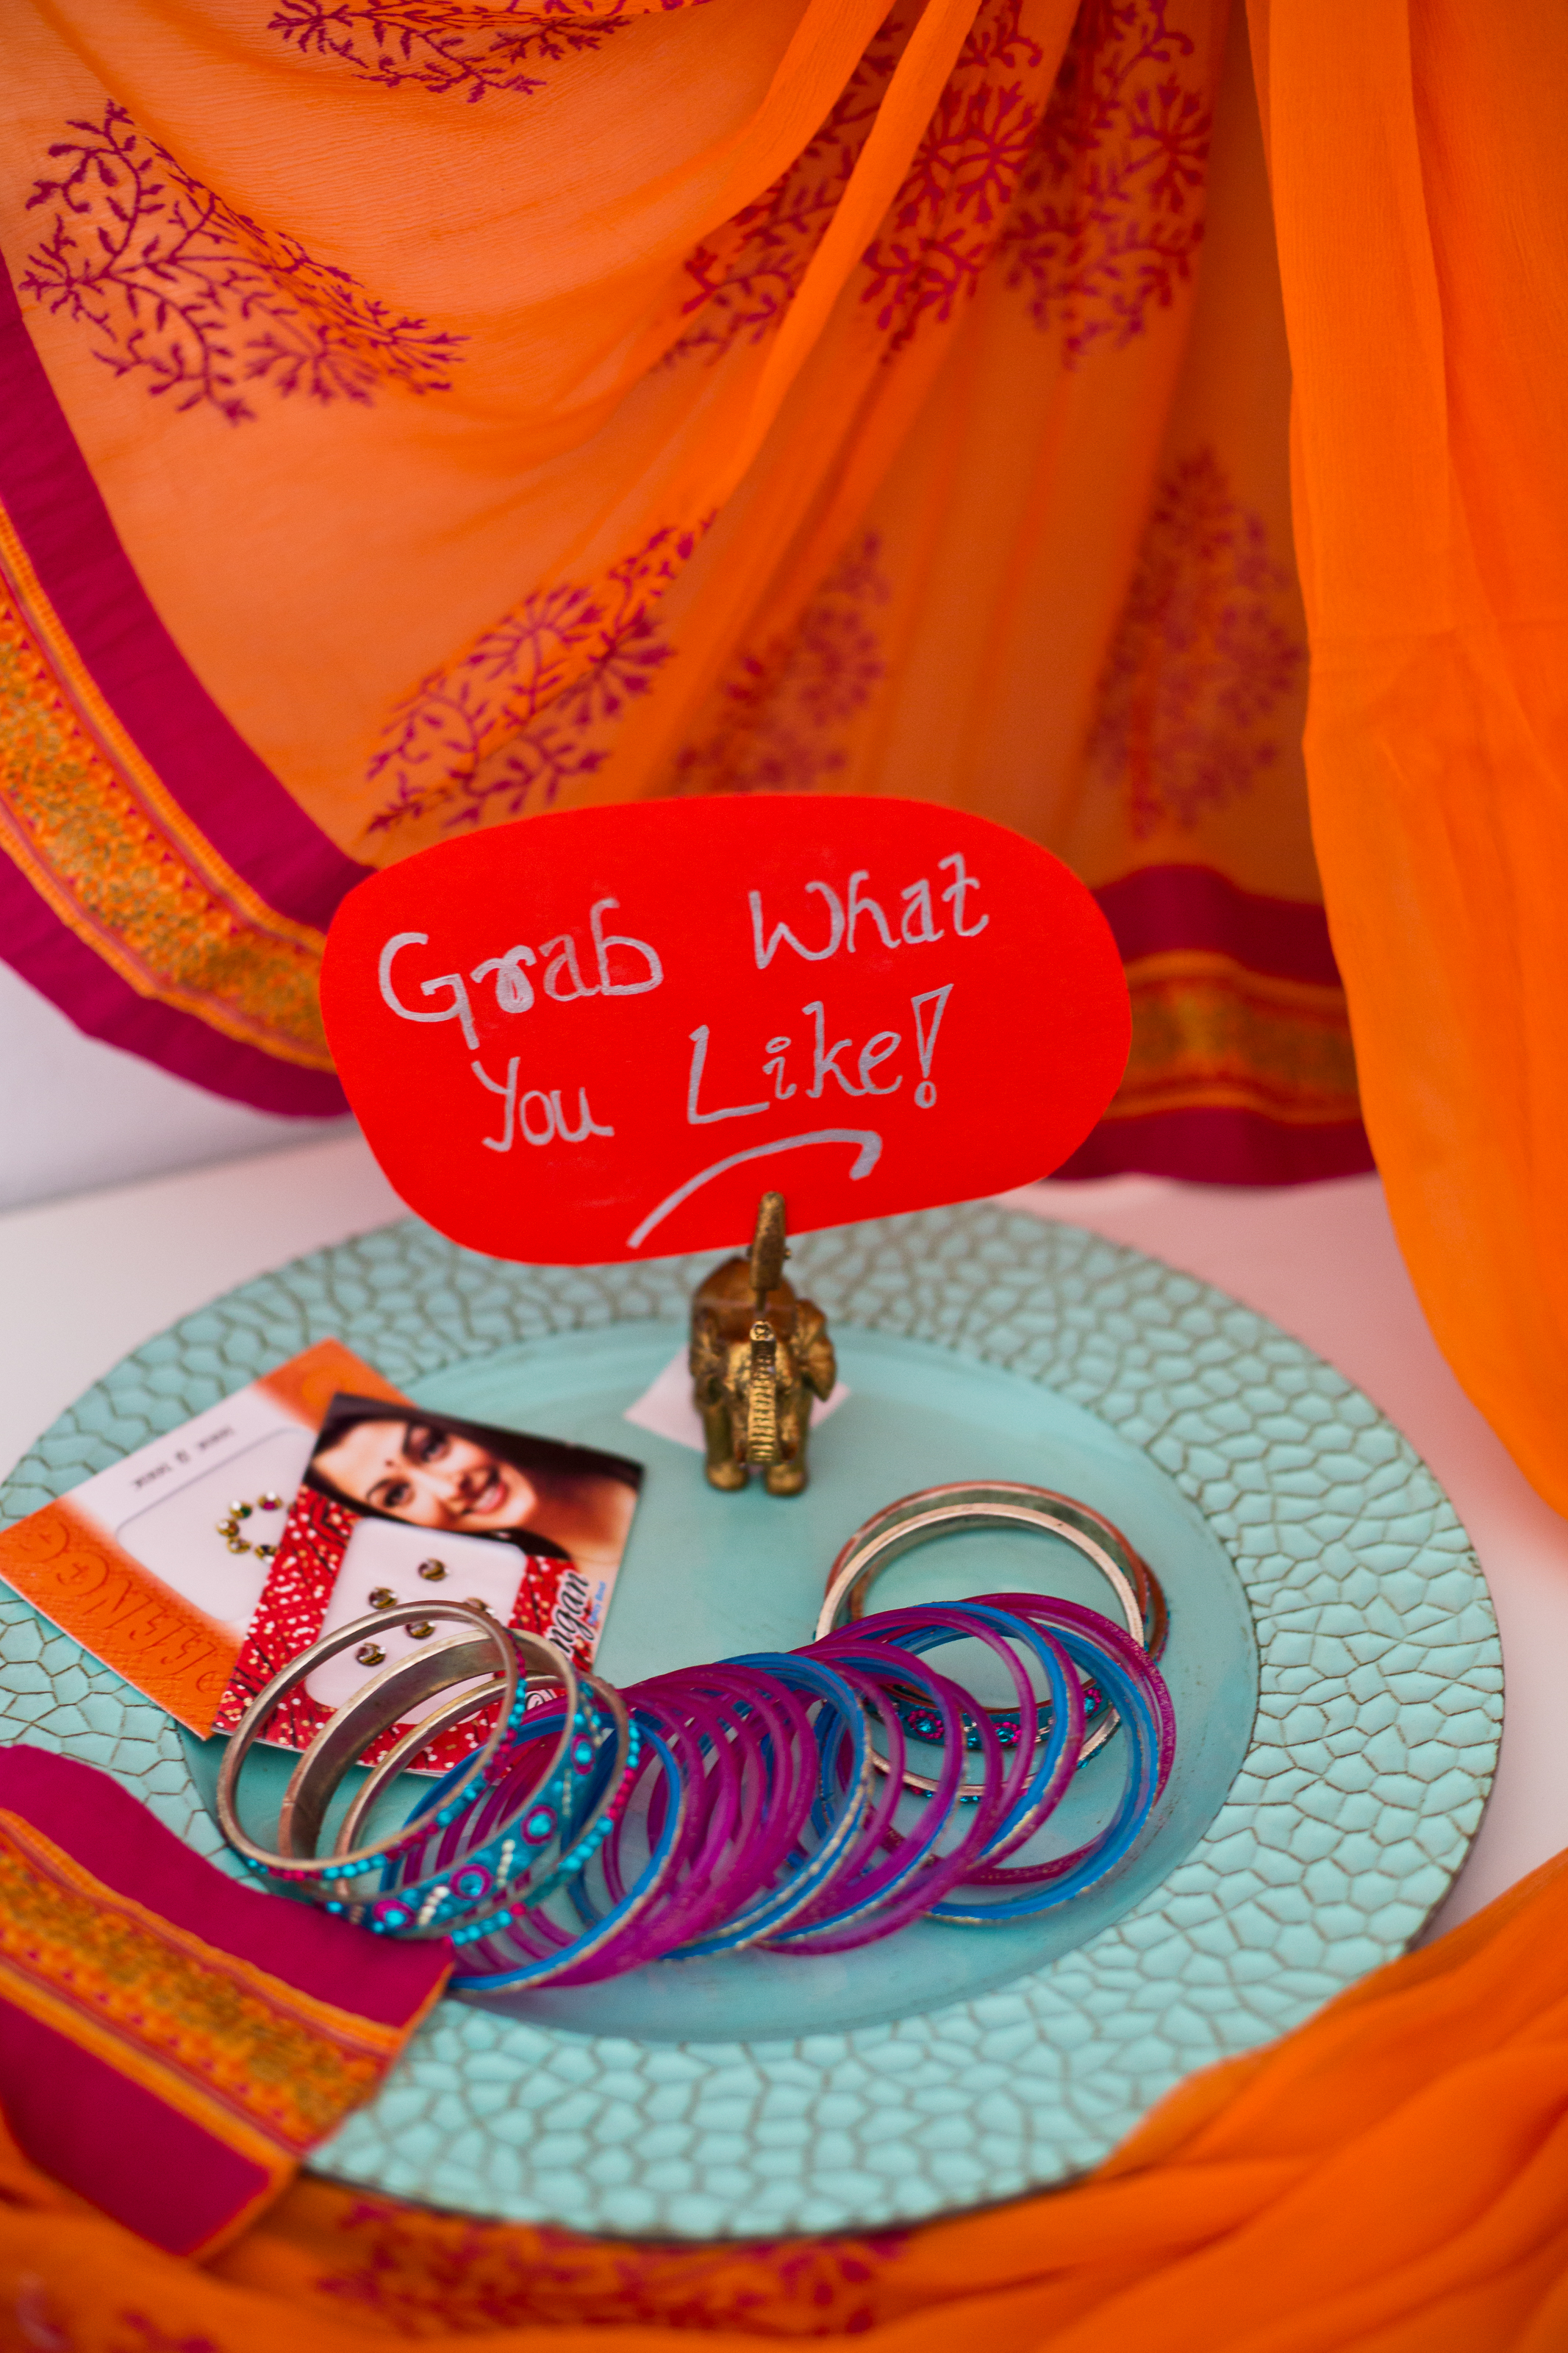 How to Plan a Fun Bollywood Party - Tasty Bite